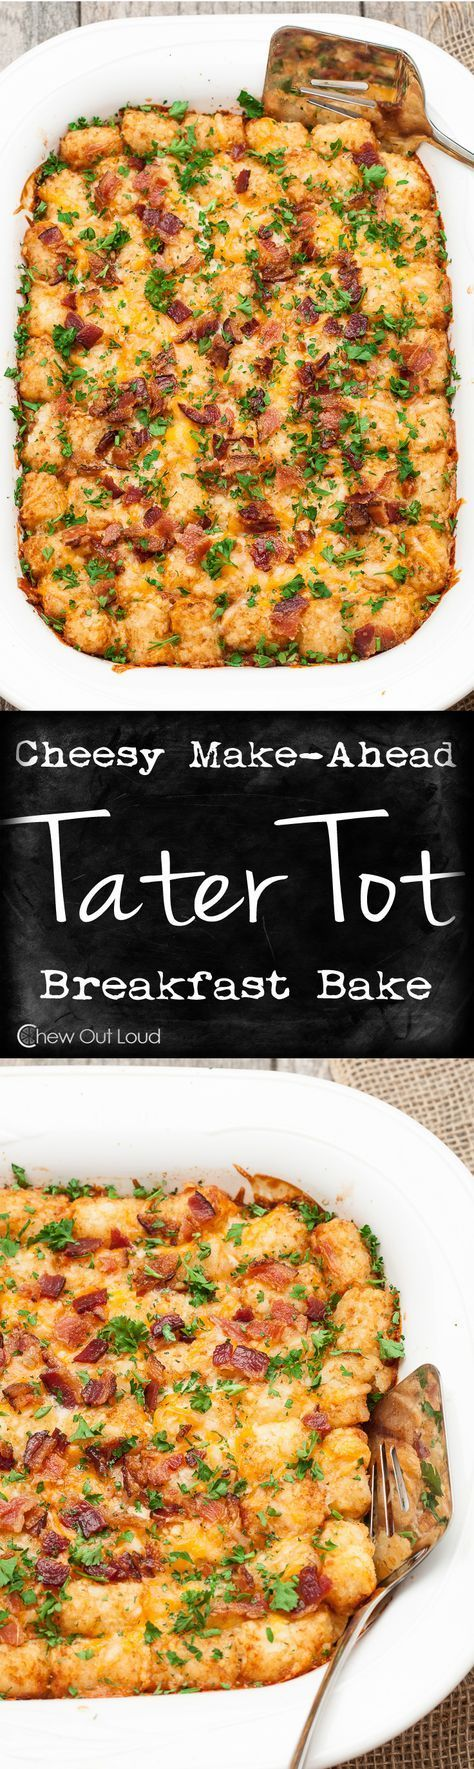 Cheesy Tater Tot Breakfast Bake. #dan330 http://livedan330.com/2015/07/12/cheesy-tater-tot-breakfast-bake/